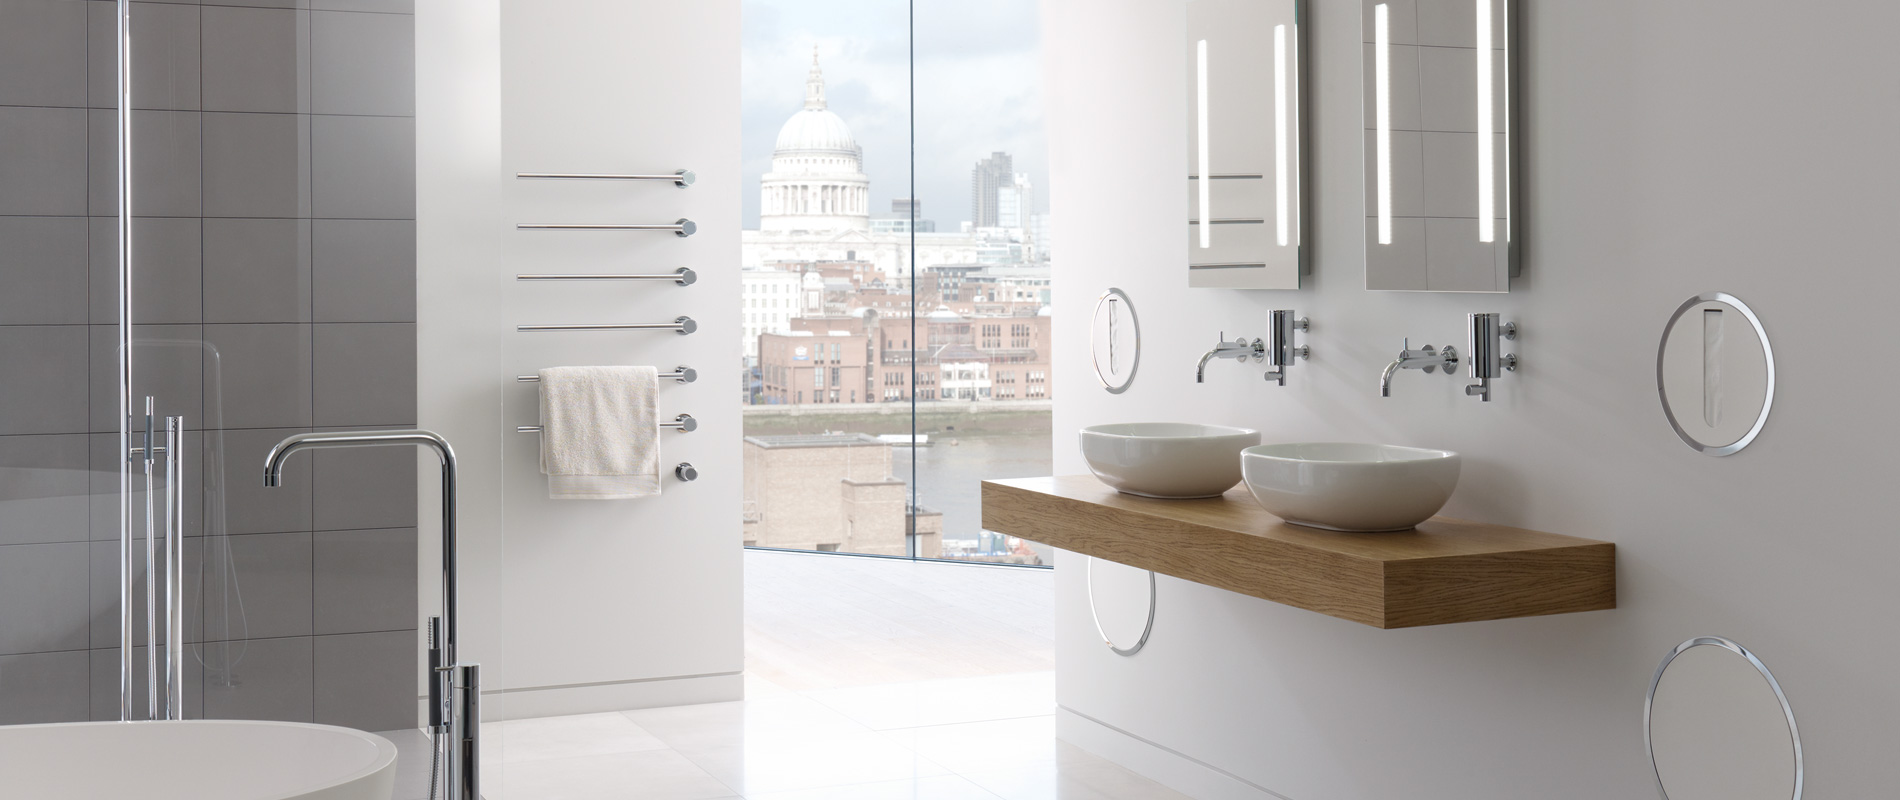 EC1 Bathrooms Suppliers of quality bathrooms at affordable prices at ...